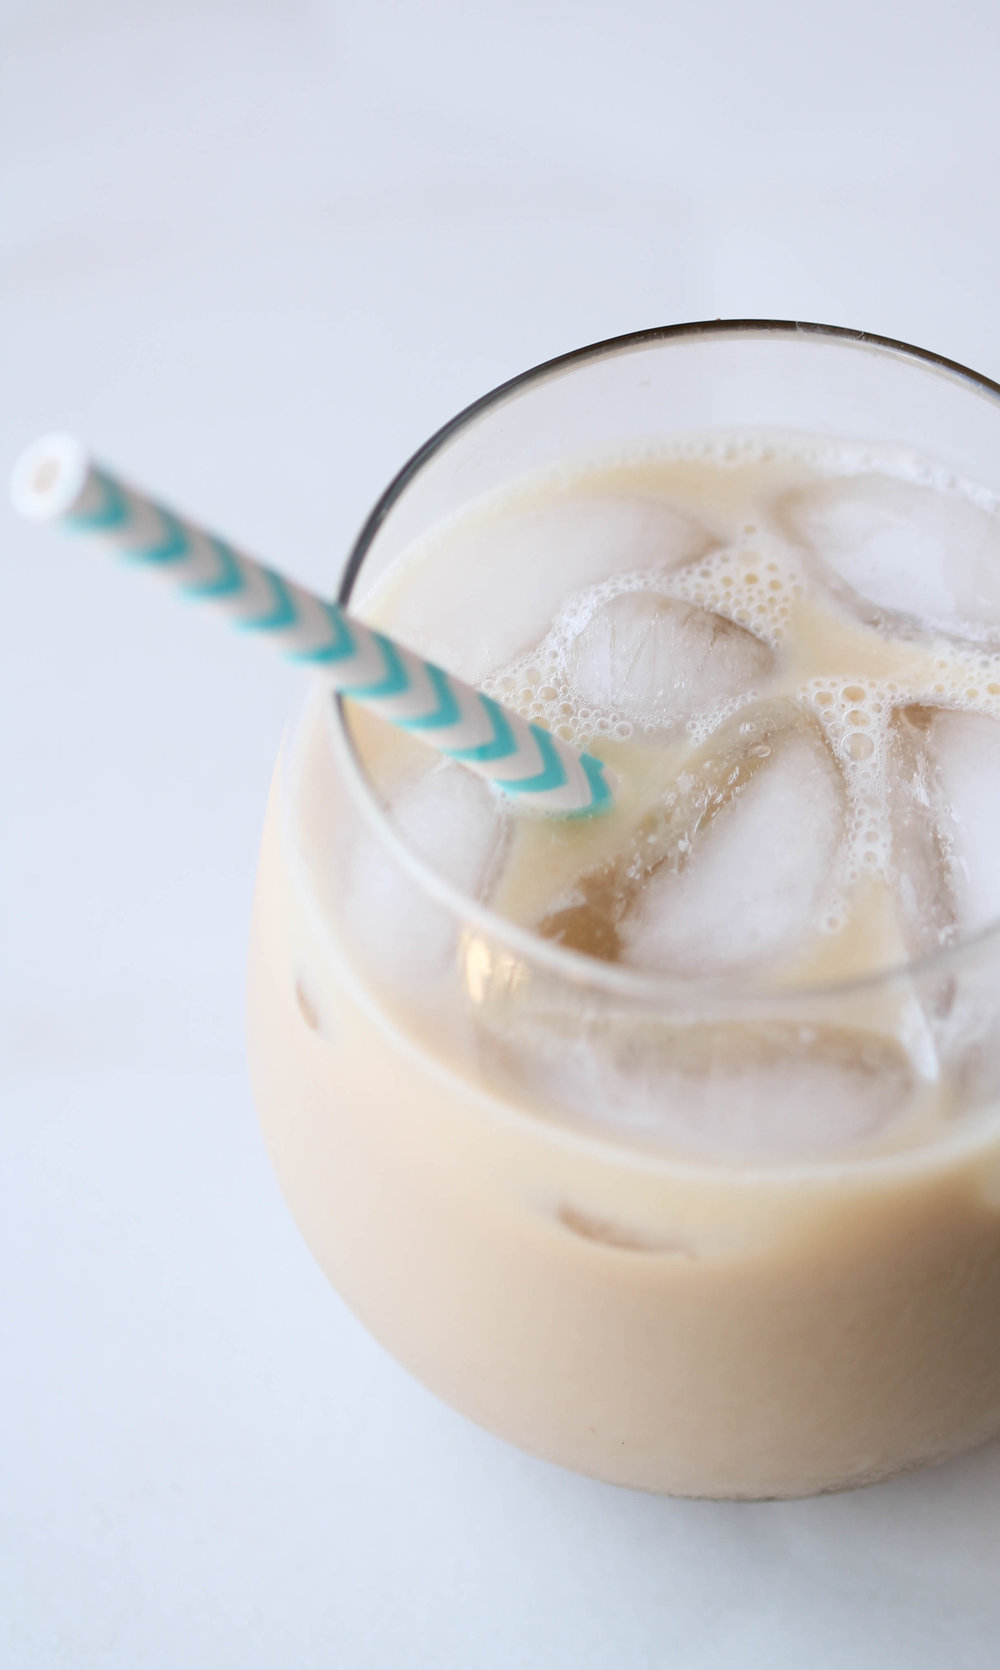 Make Instant Iced Latte in 2 minutes or less using instant coffee, sweetener and milk of your choice! It's super simple and doesn't require any fancy equipment.